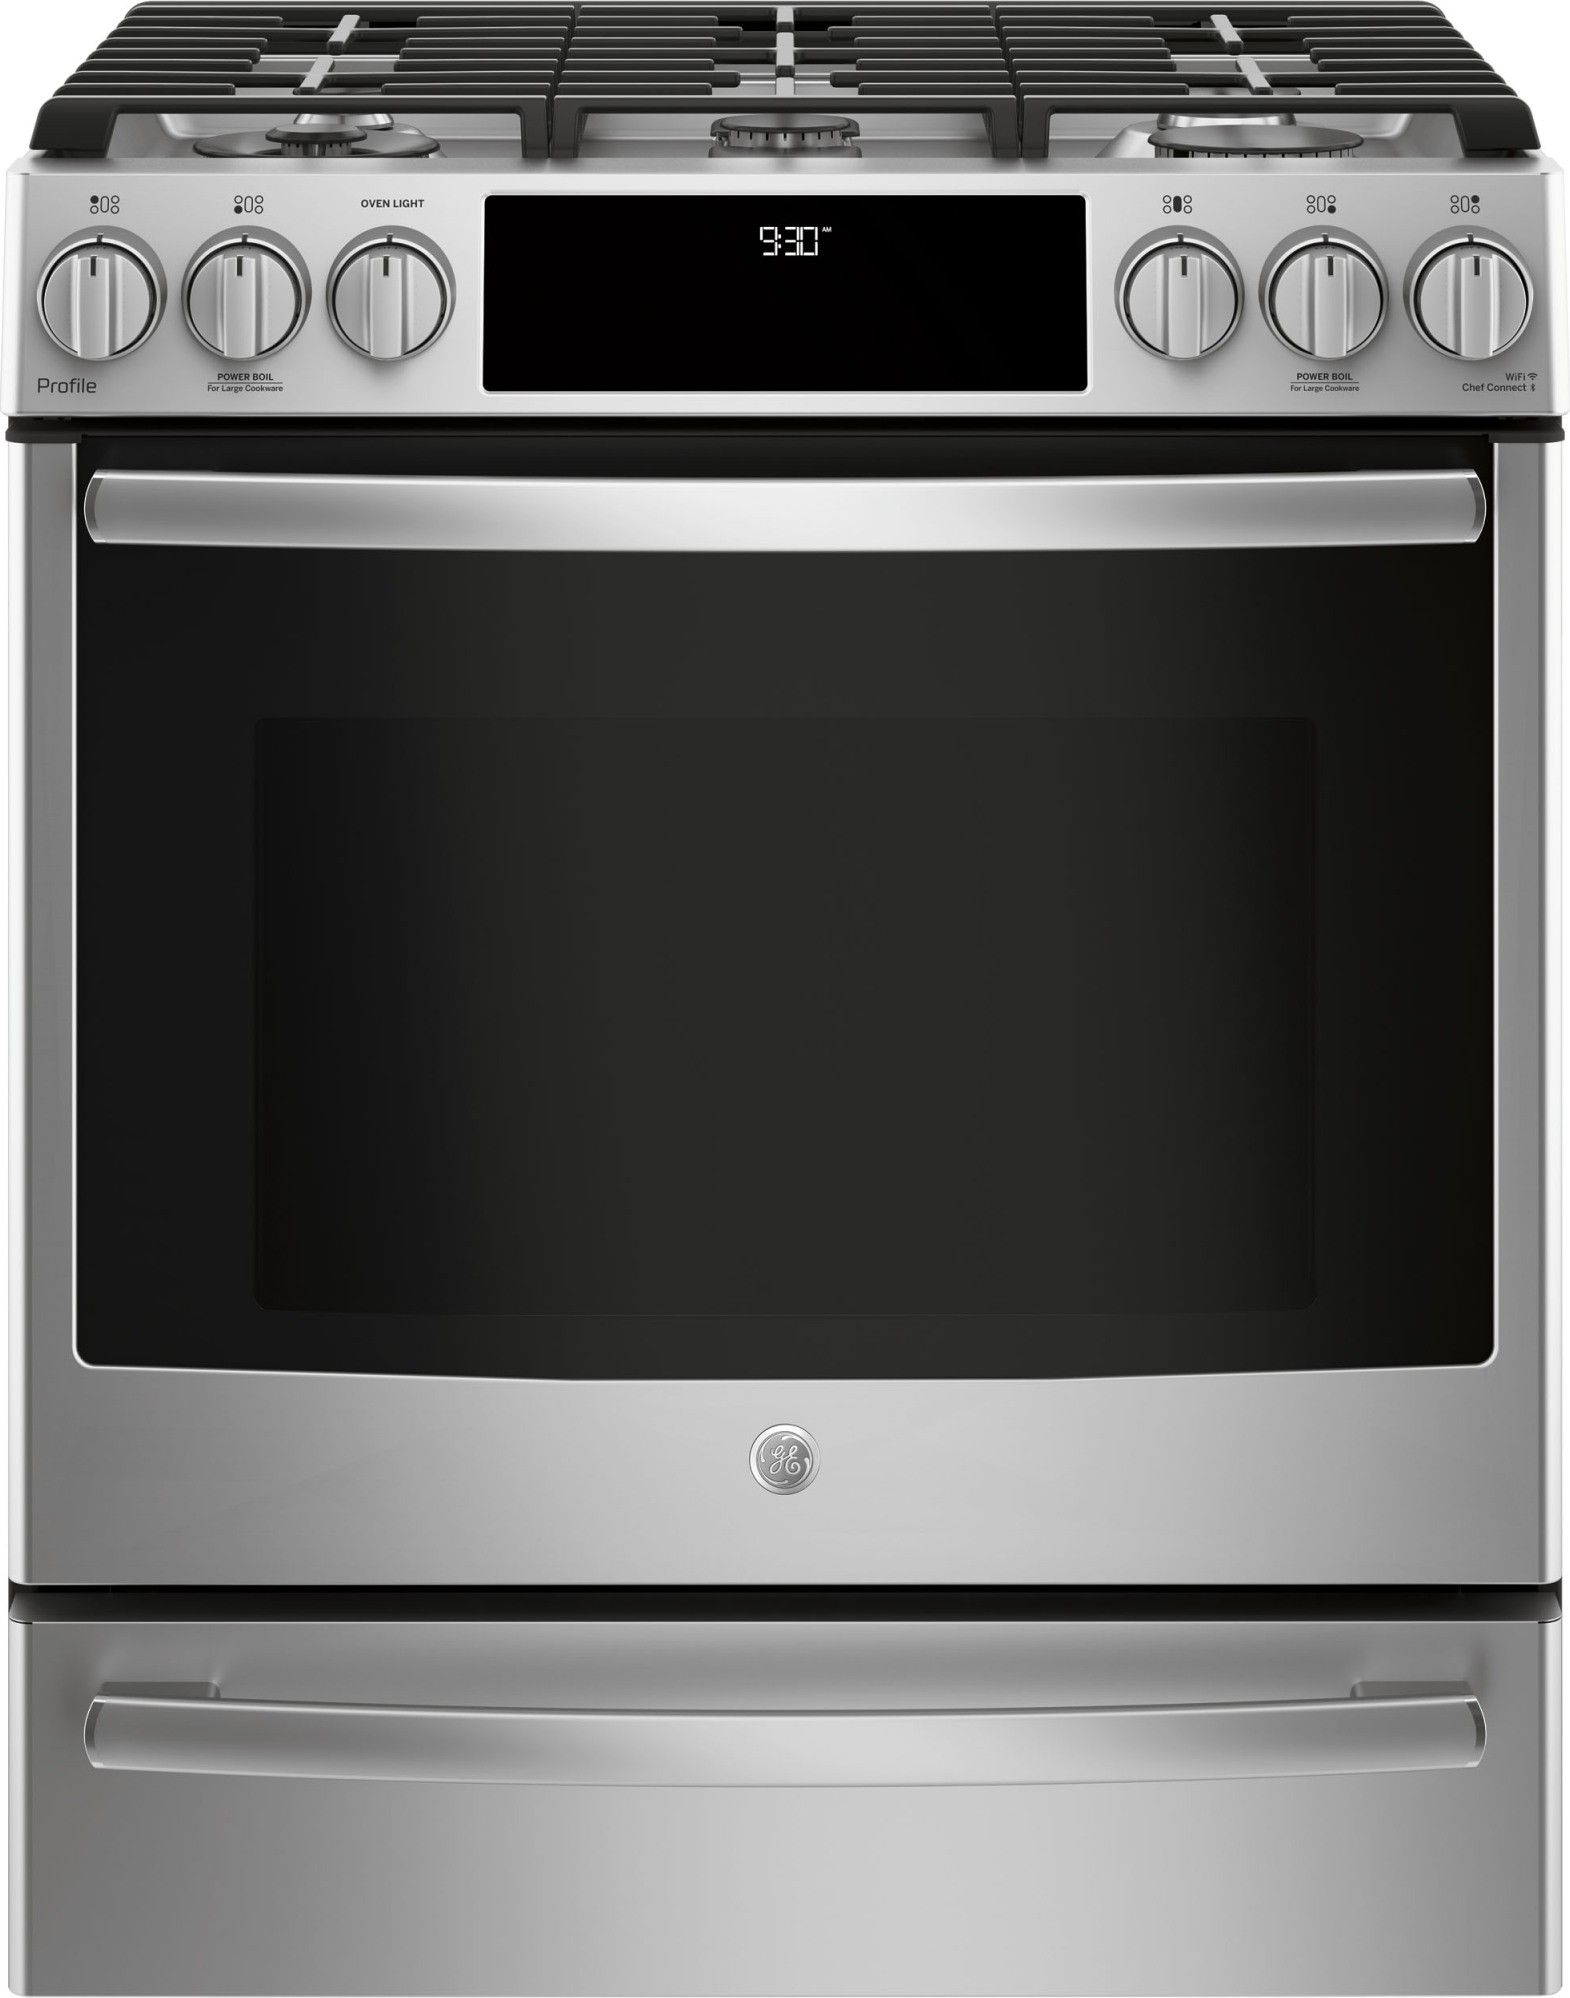 Ge Profile Pgs930selss 30 Slide In Gas Range Convection Self